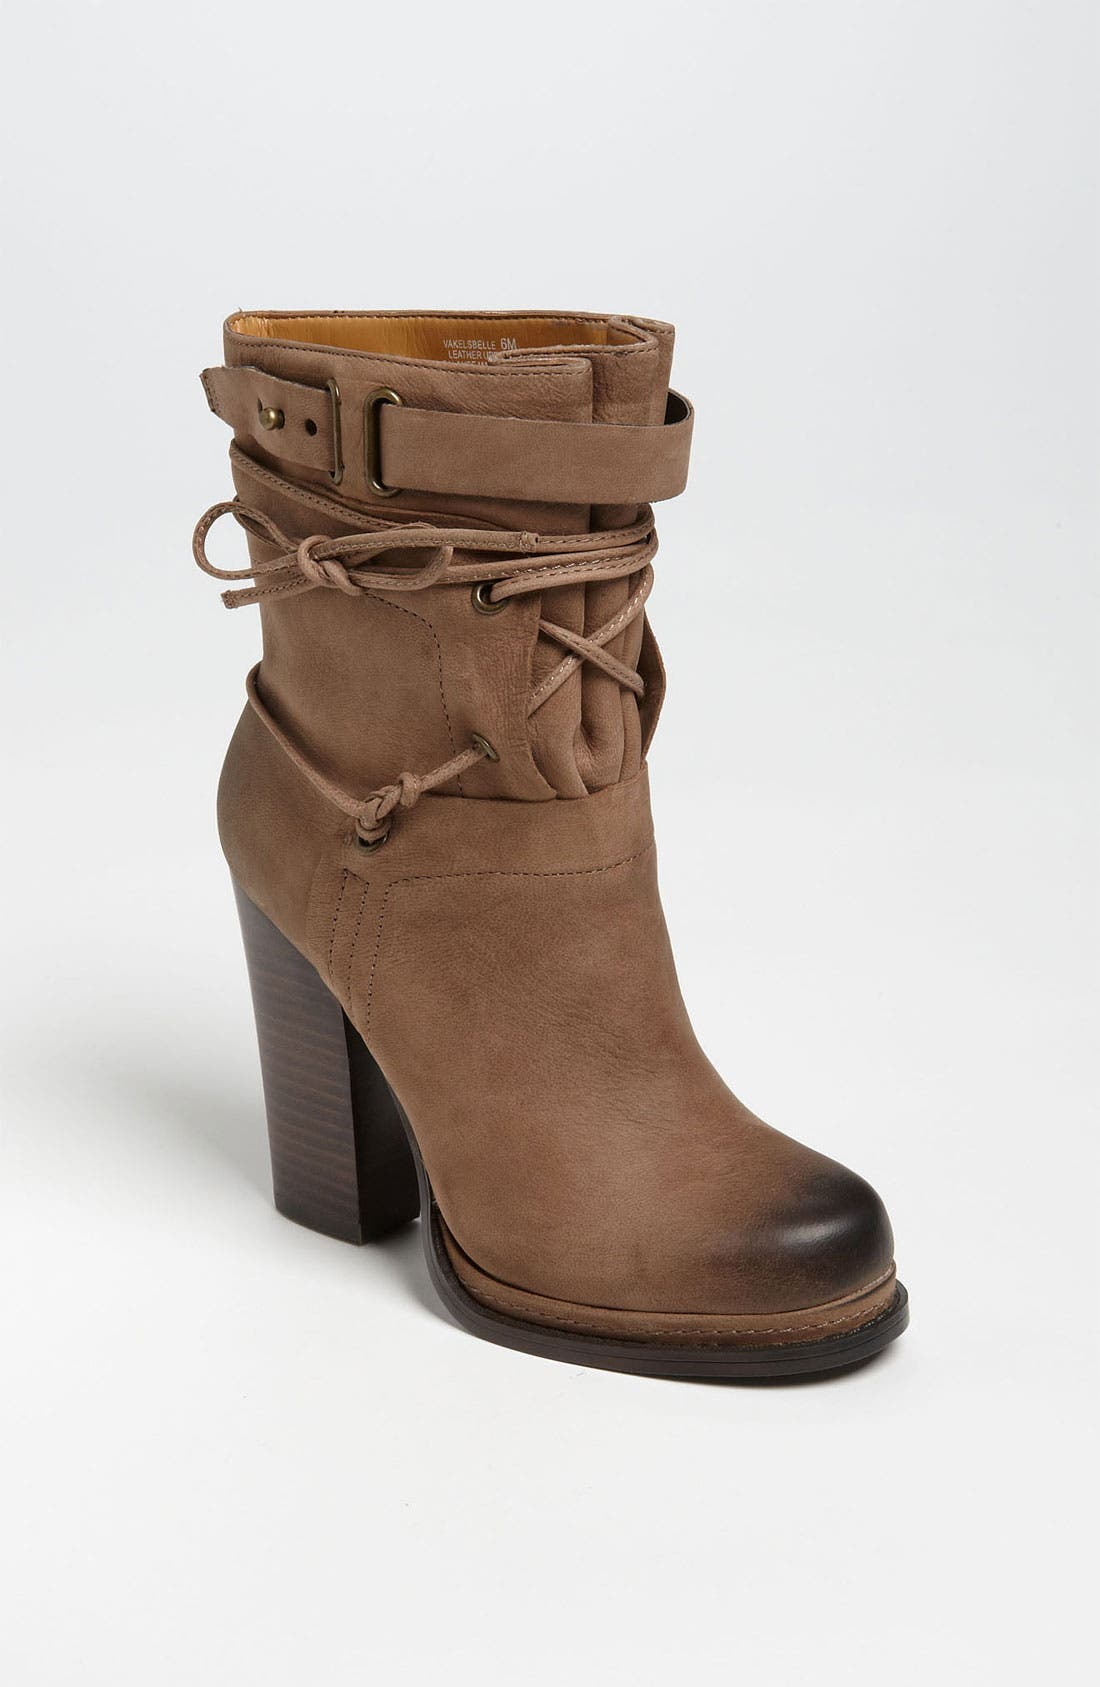 Alternate Image 1 Selected - Nine West 'Vakelsbelle' Boot (Online Exclusive)